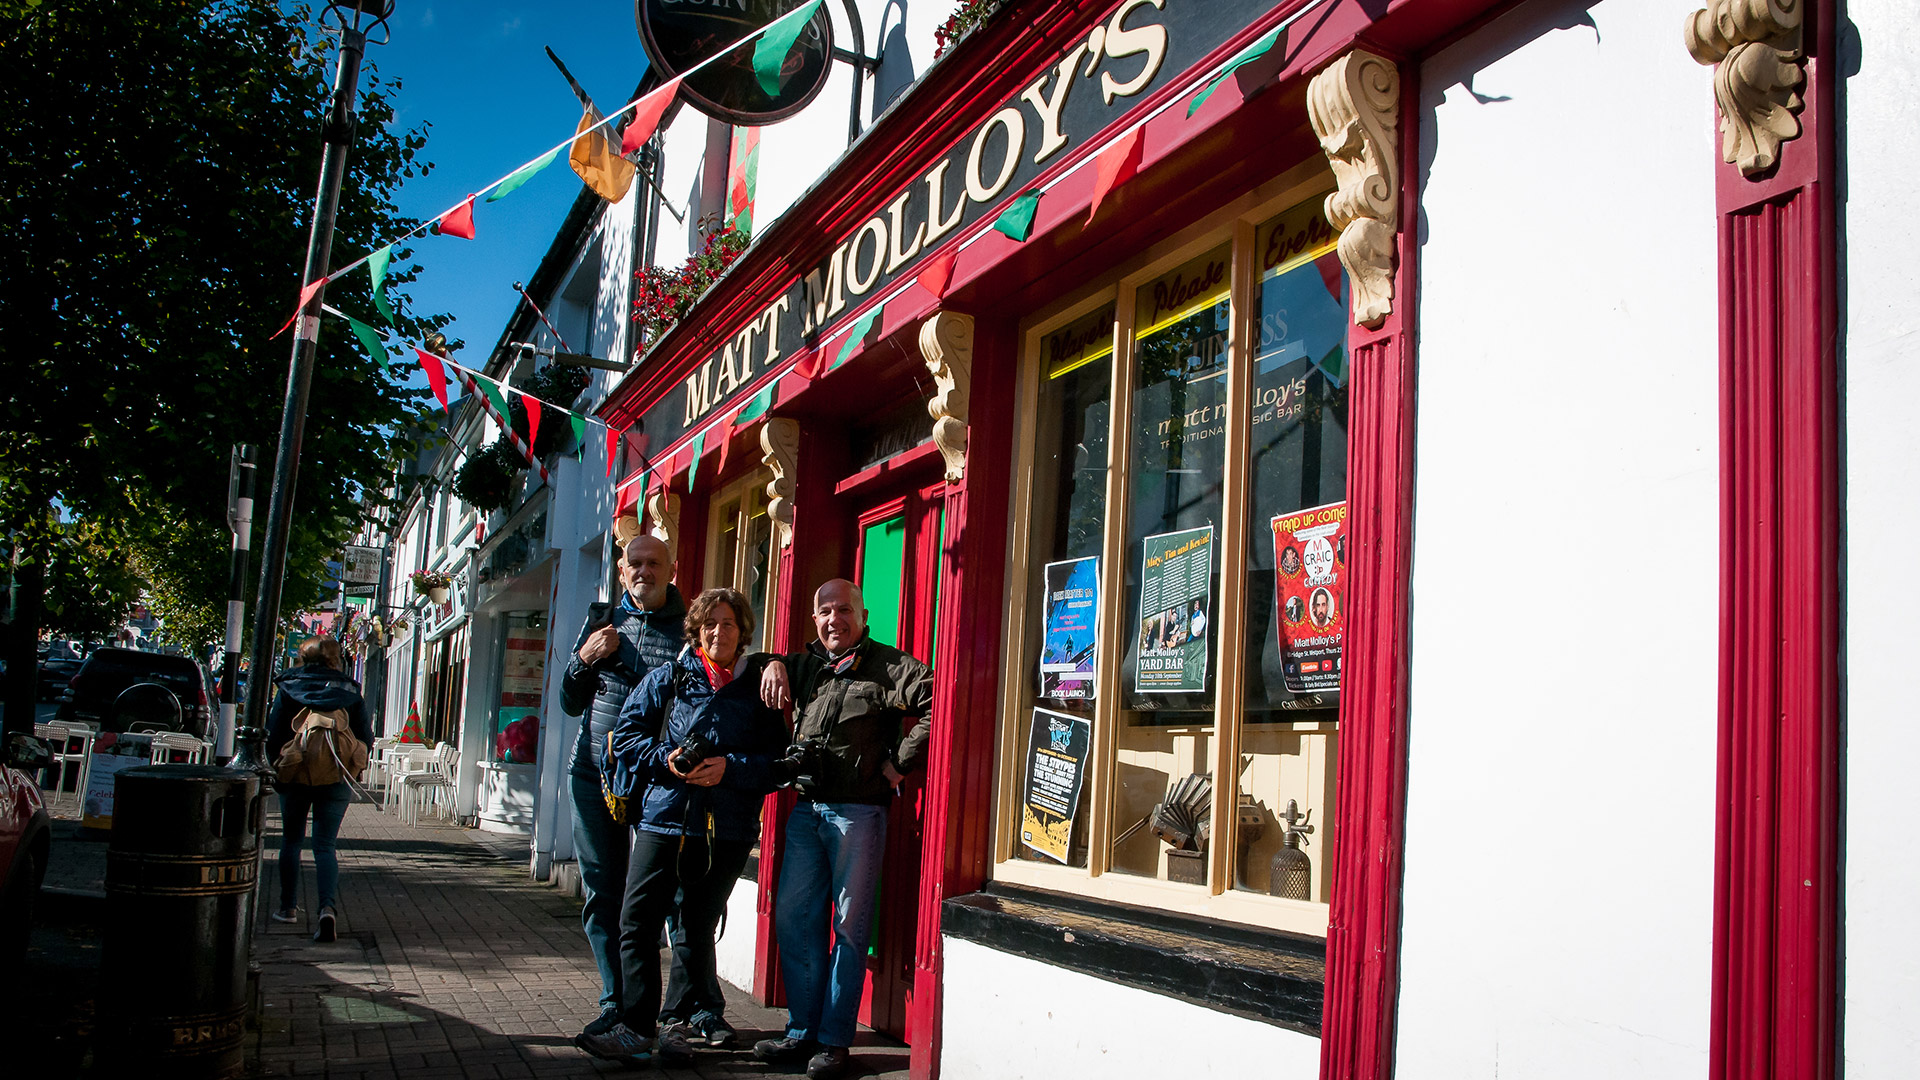 Westport - Matt Molloy's Pub